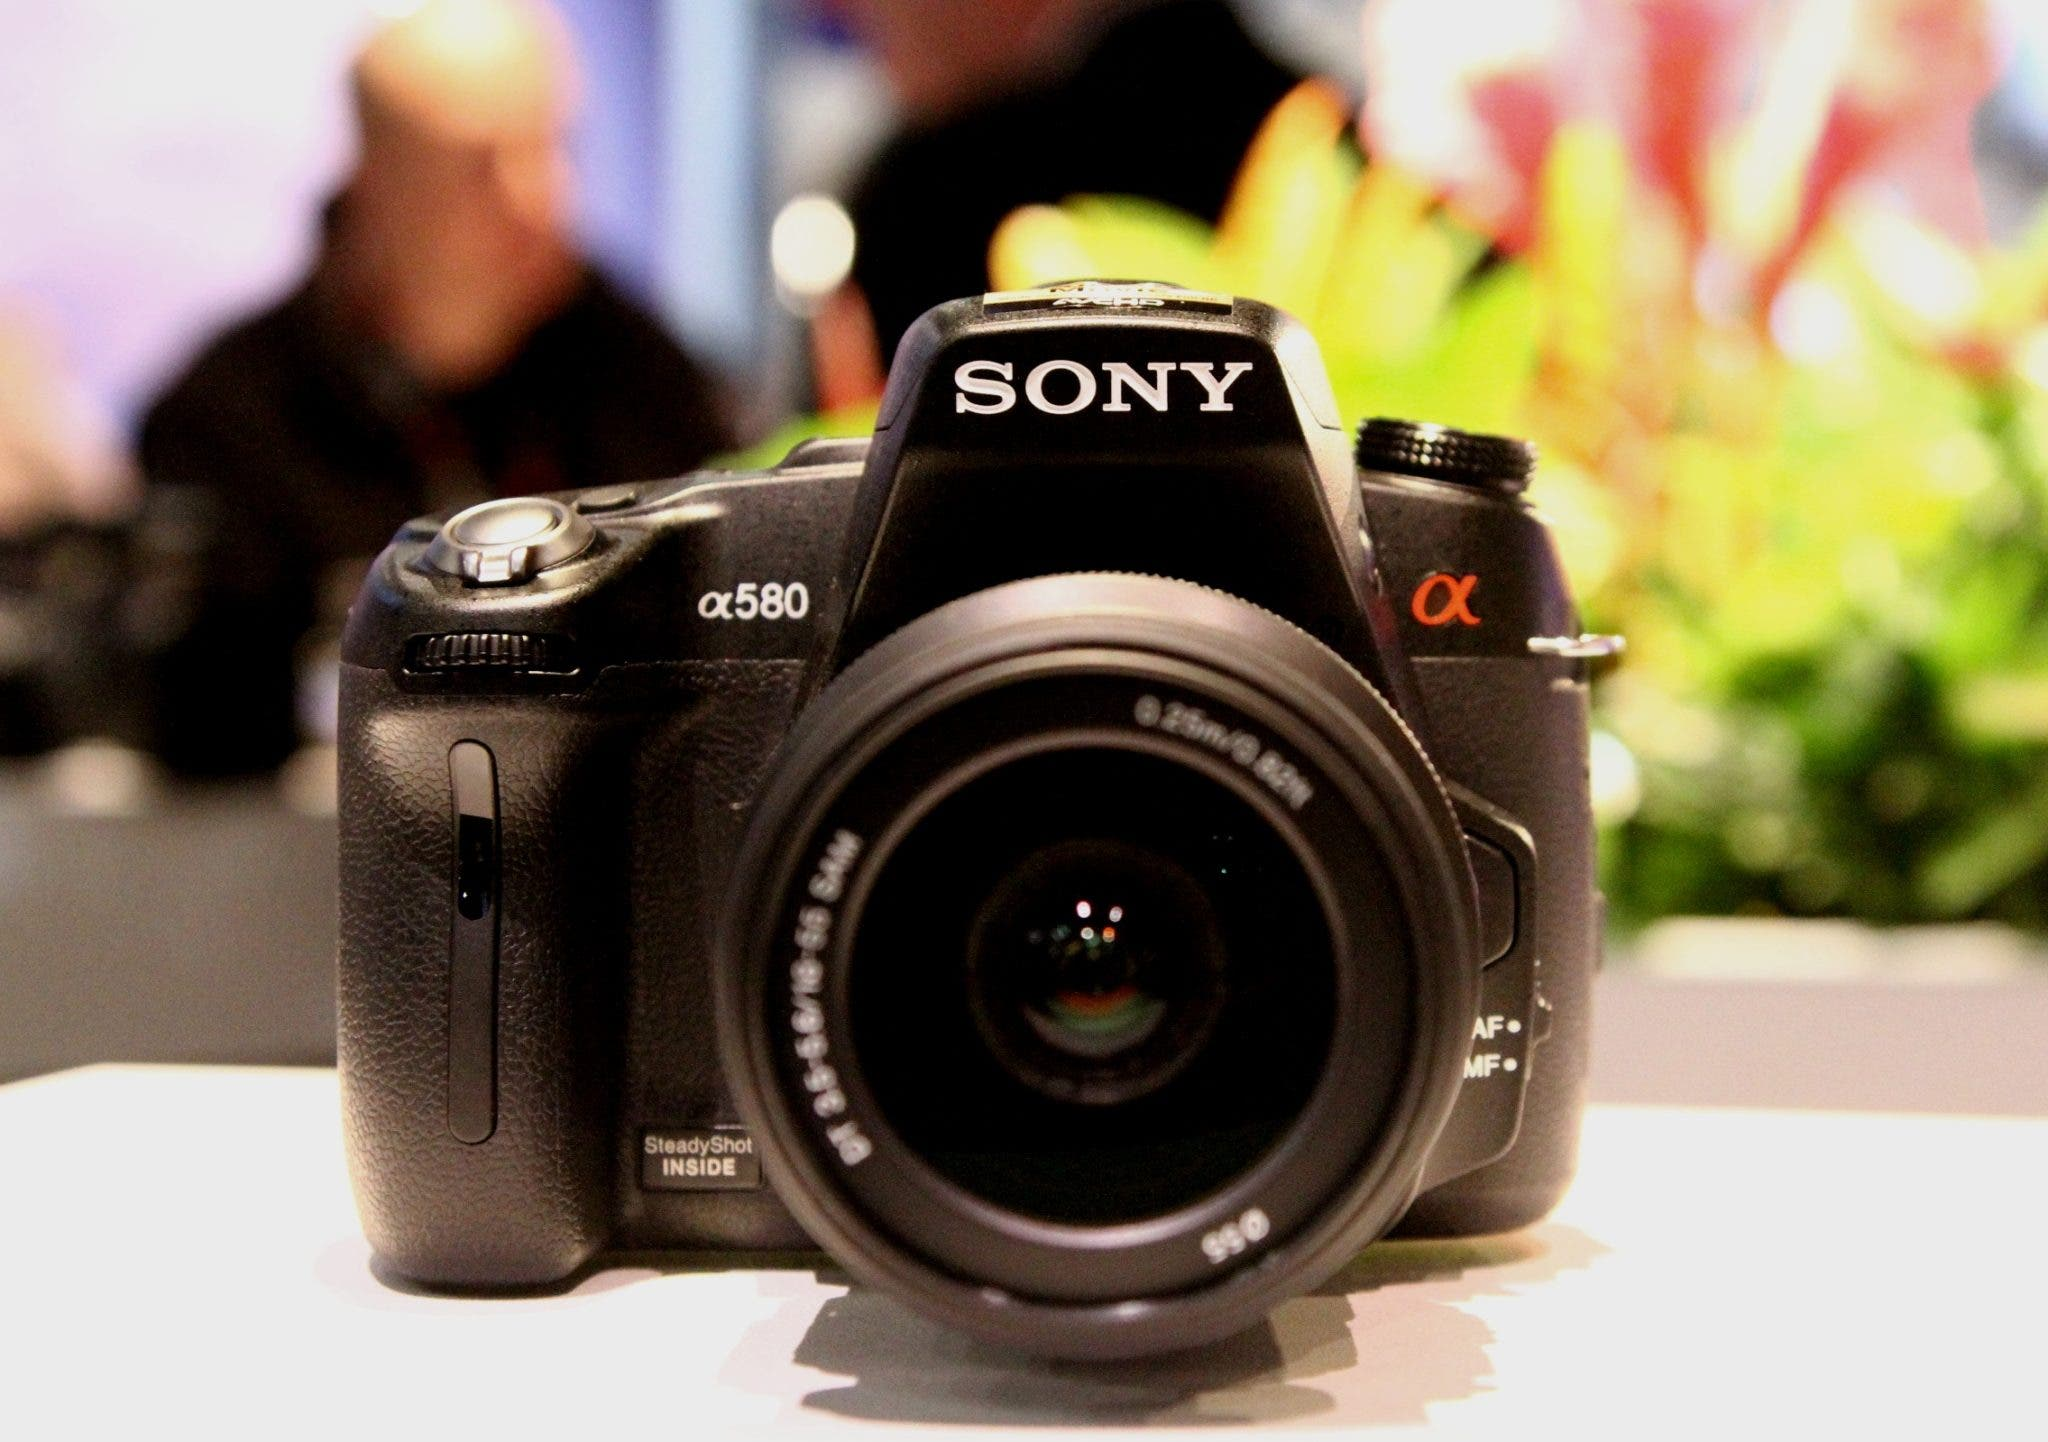 Hands-on with the Sony a580